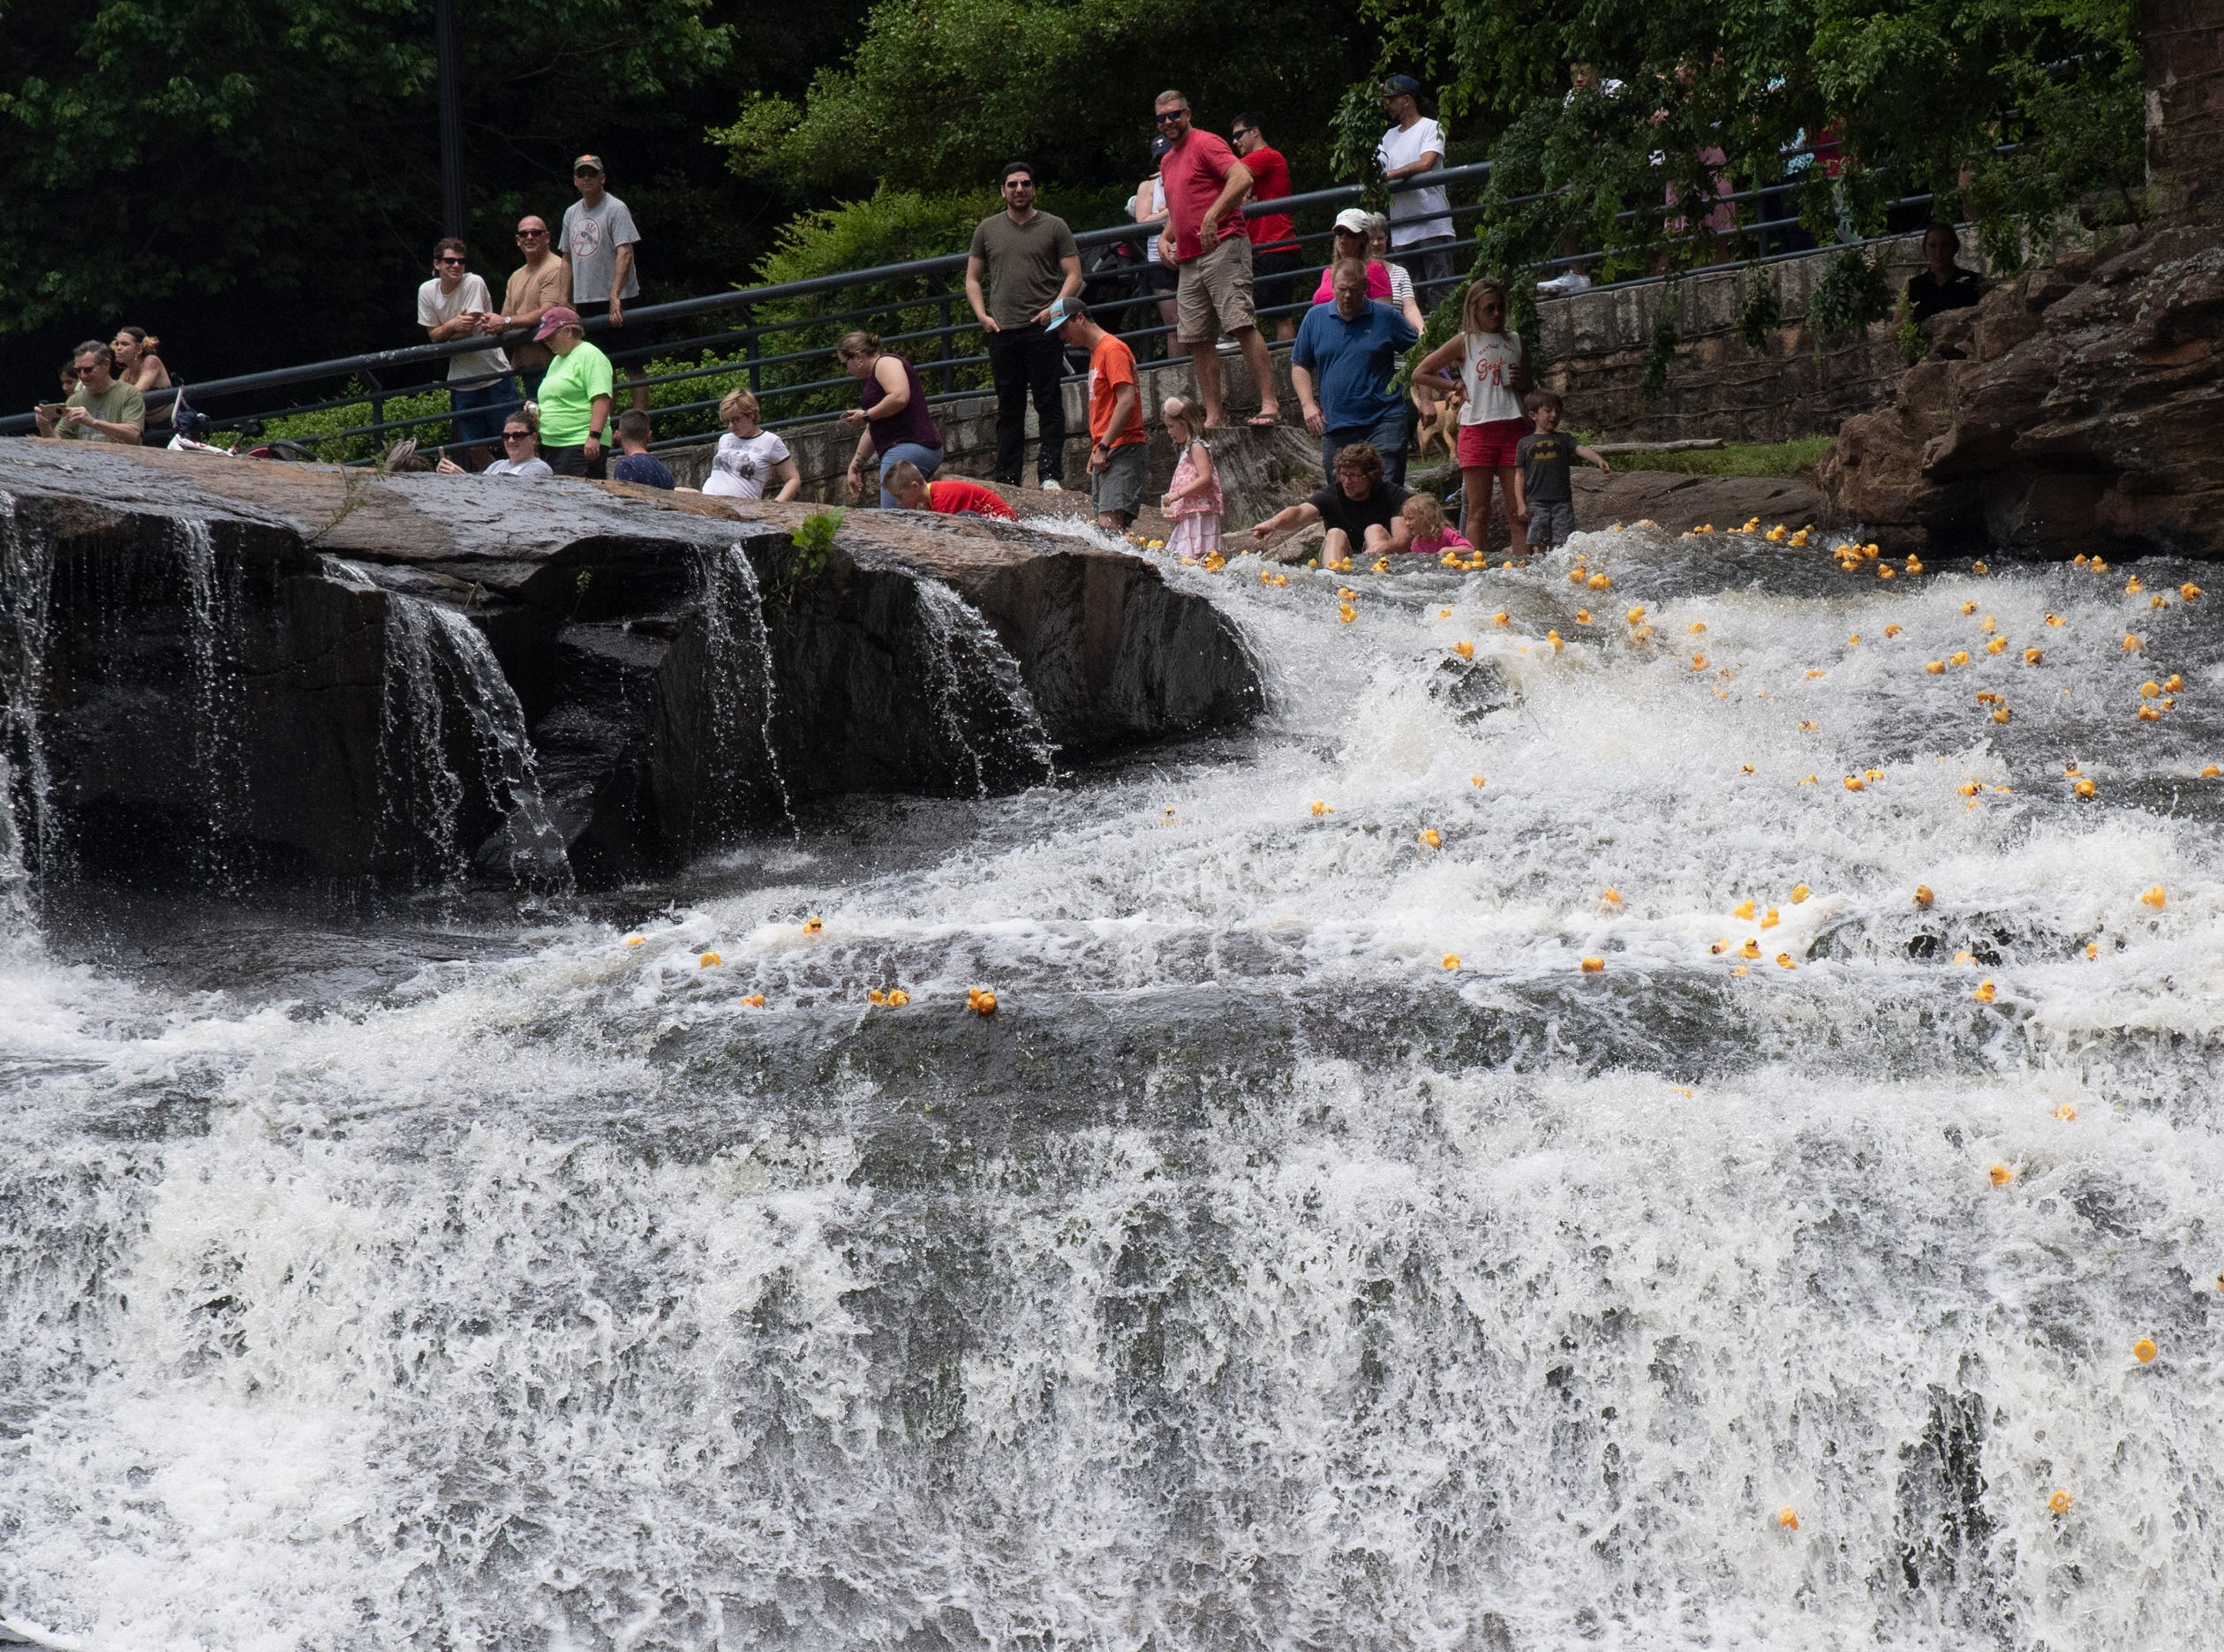 People watch as rubber ducks travel down the falls during the 2019 Reedy River Duck Derby in Falls Park on the Reedy Saturday, May 4, 2019.